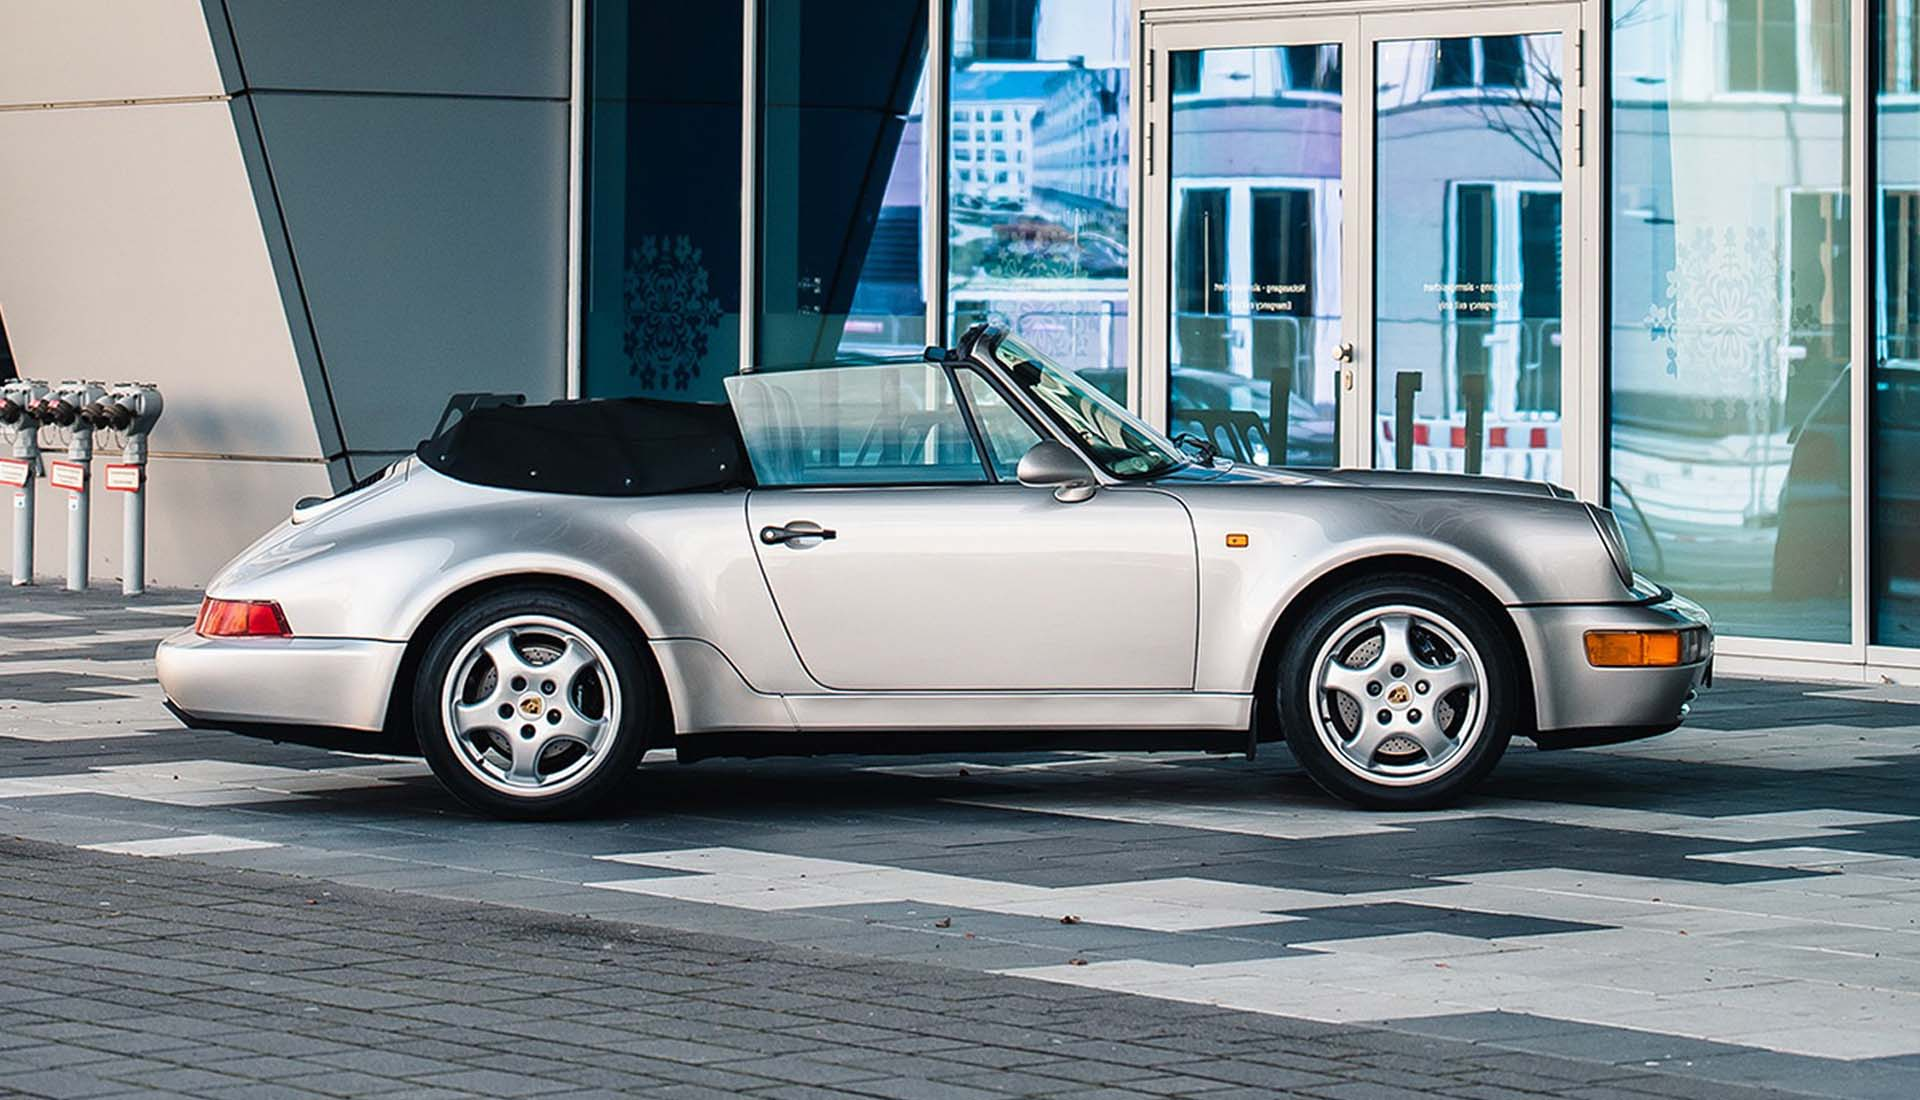 Convertible car with turbo speed